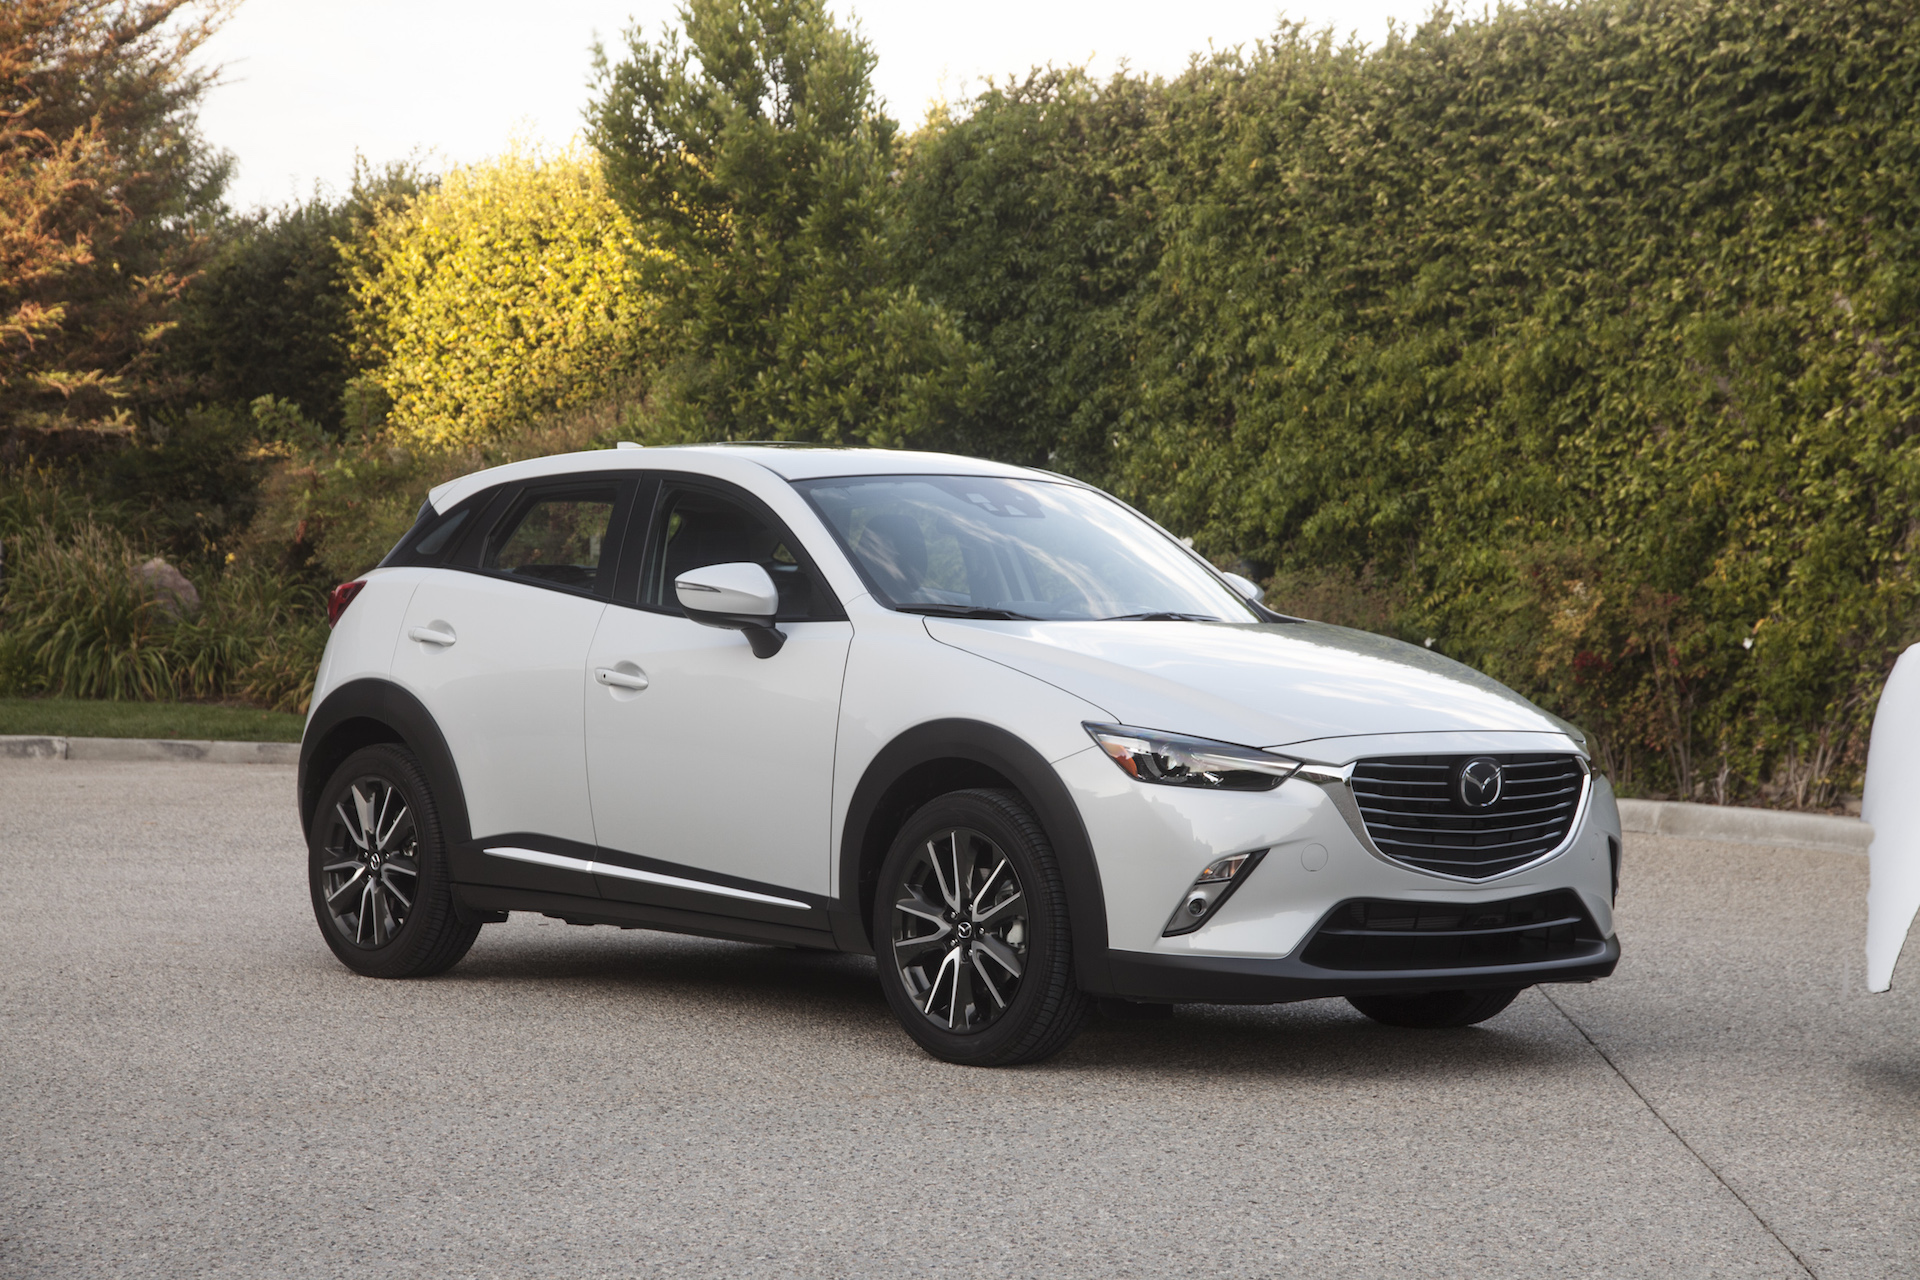 New and Used Mazda CX-3: Prices, Photos, Reviews, Specs - The Car Connection